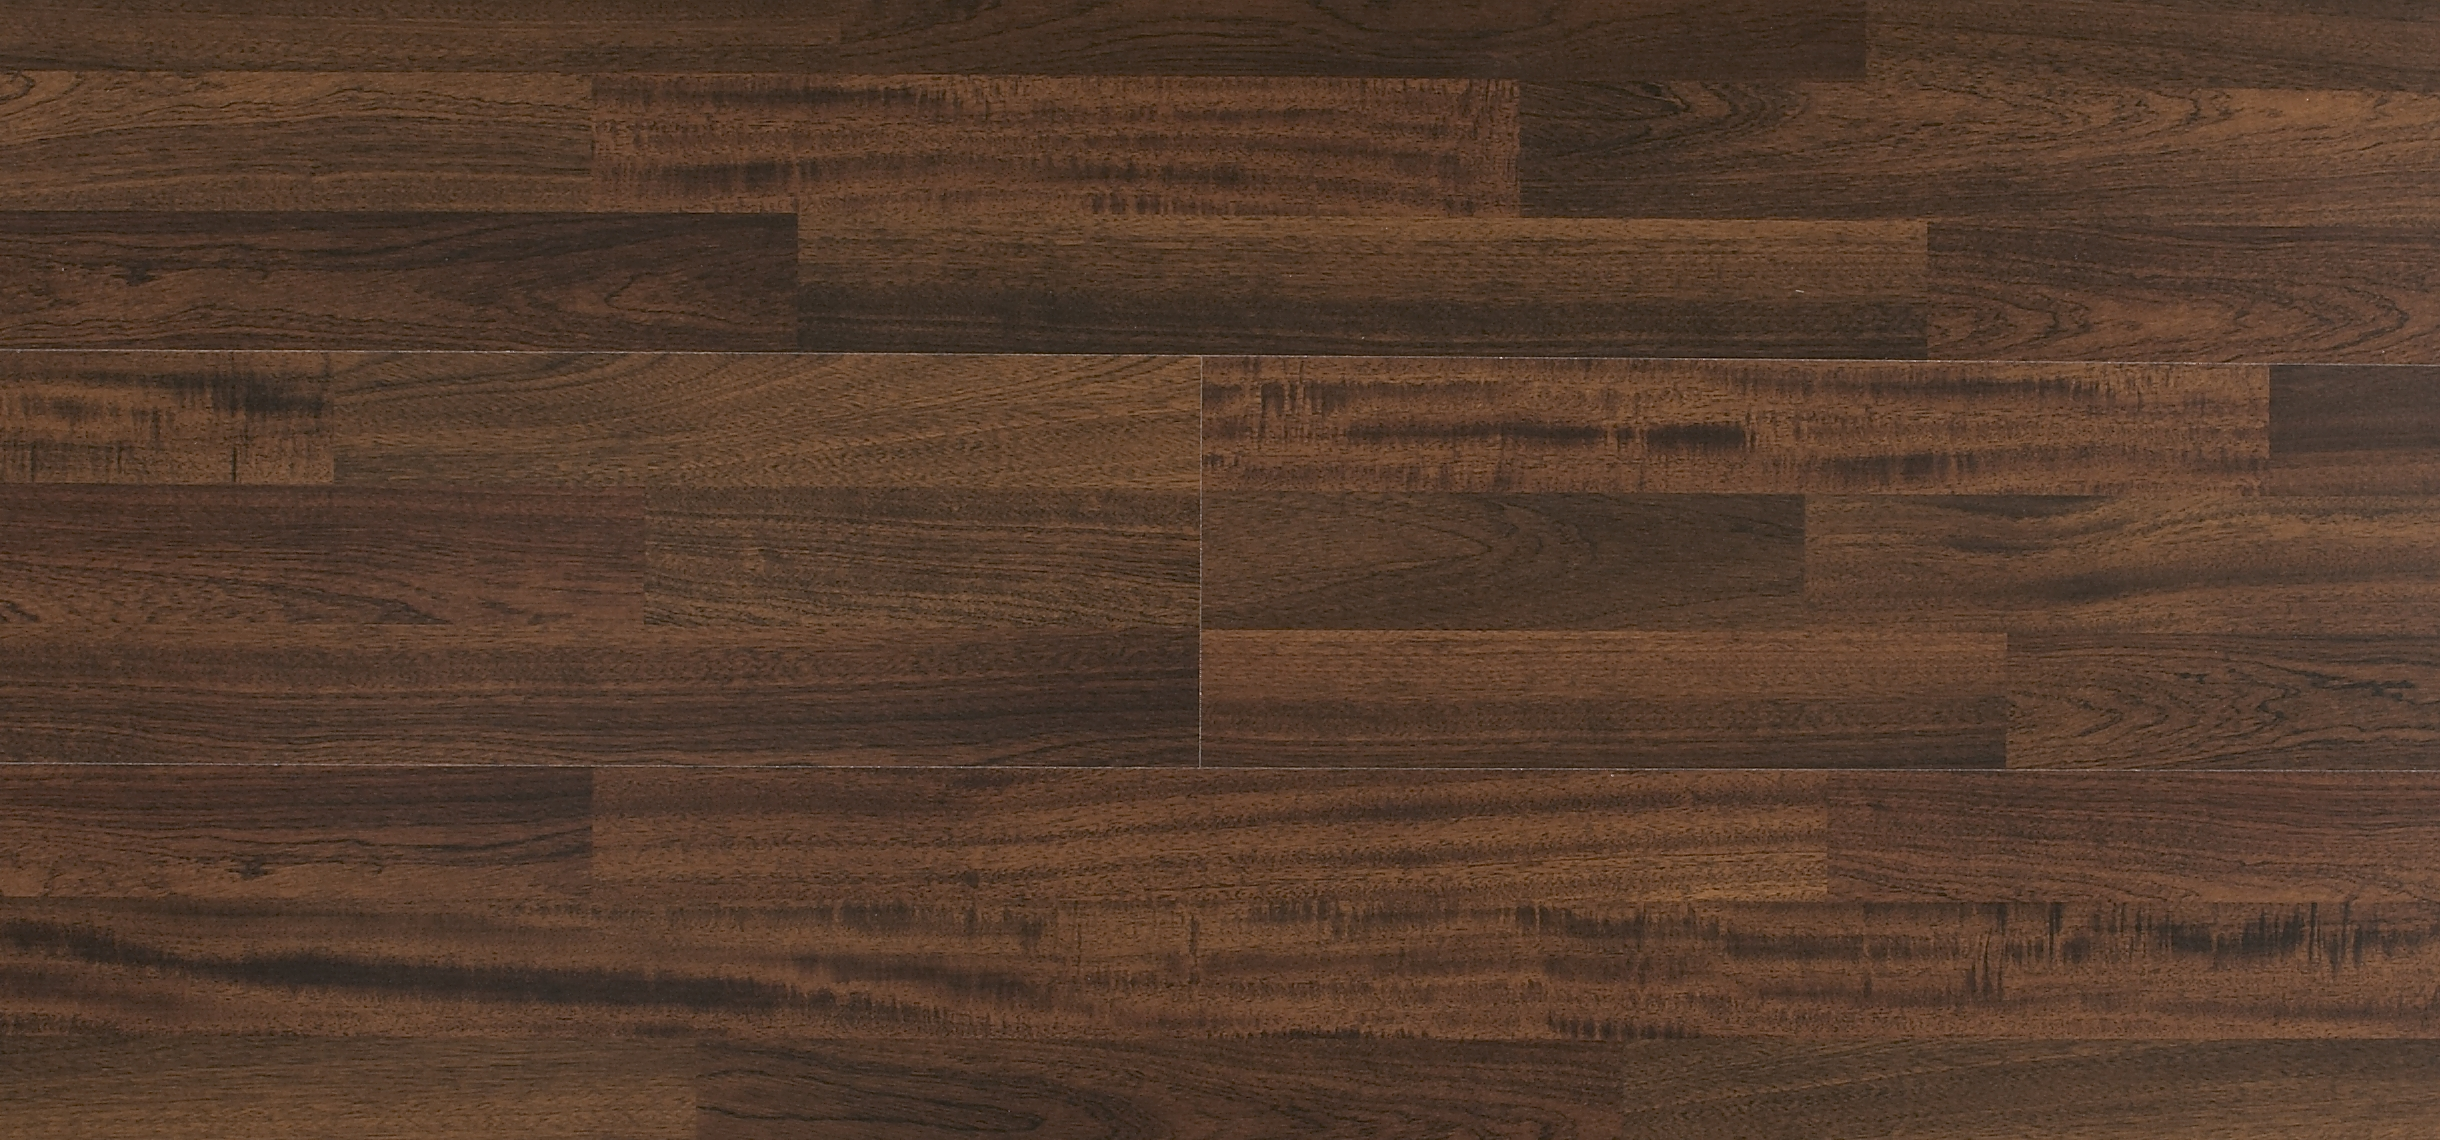 Wood background texture wooden tiles free image wood background - Wood Background Texture Wooden Tiles Free Image